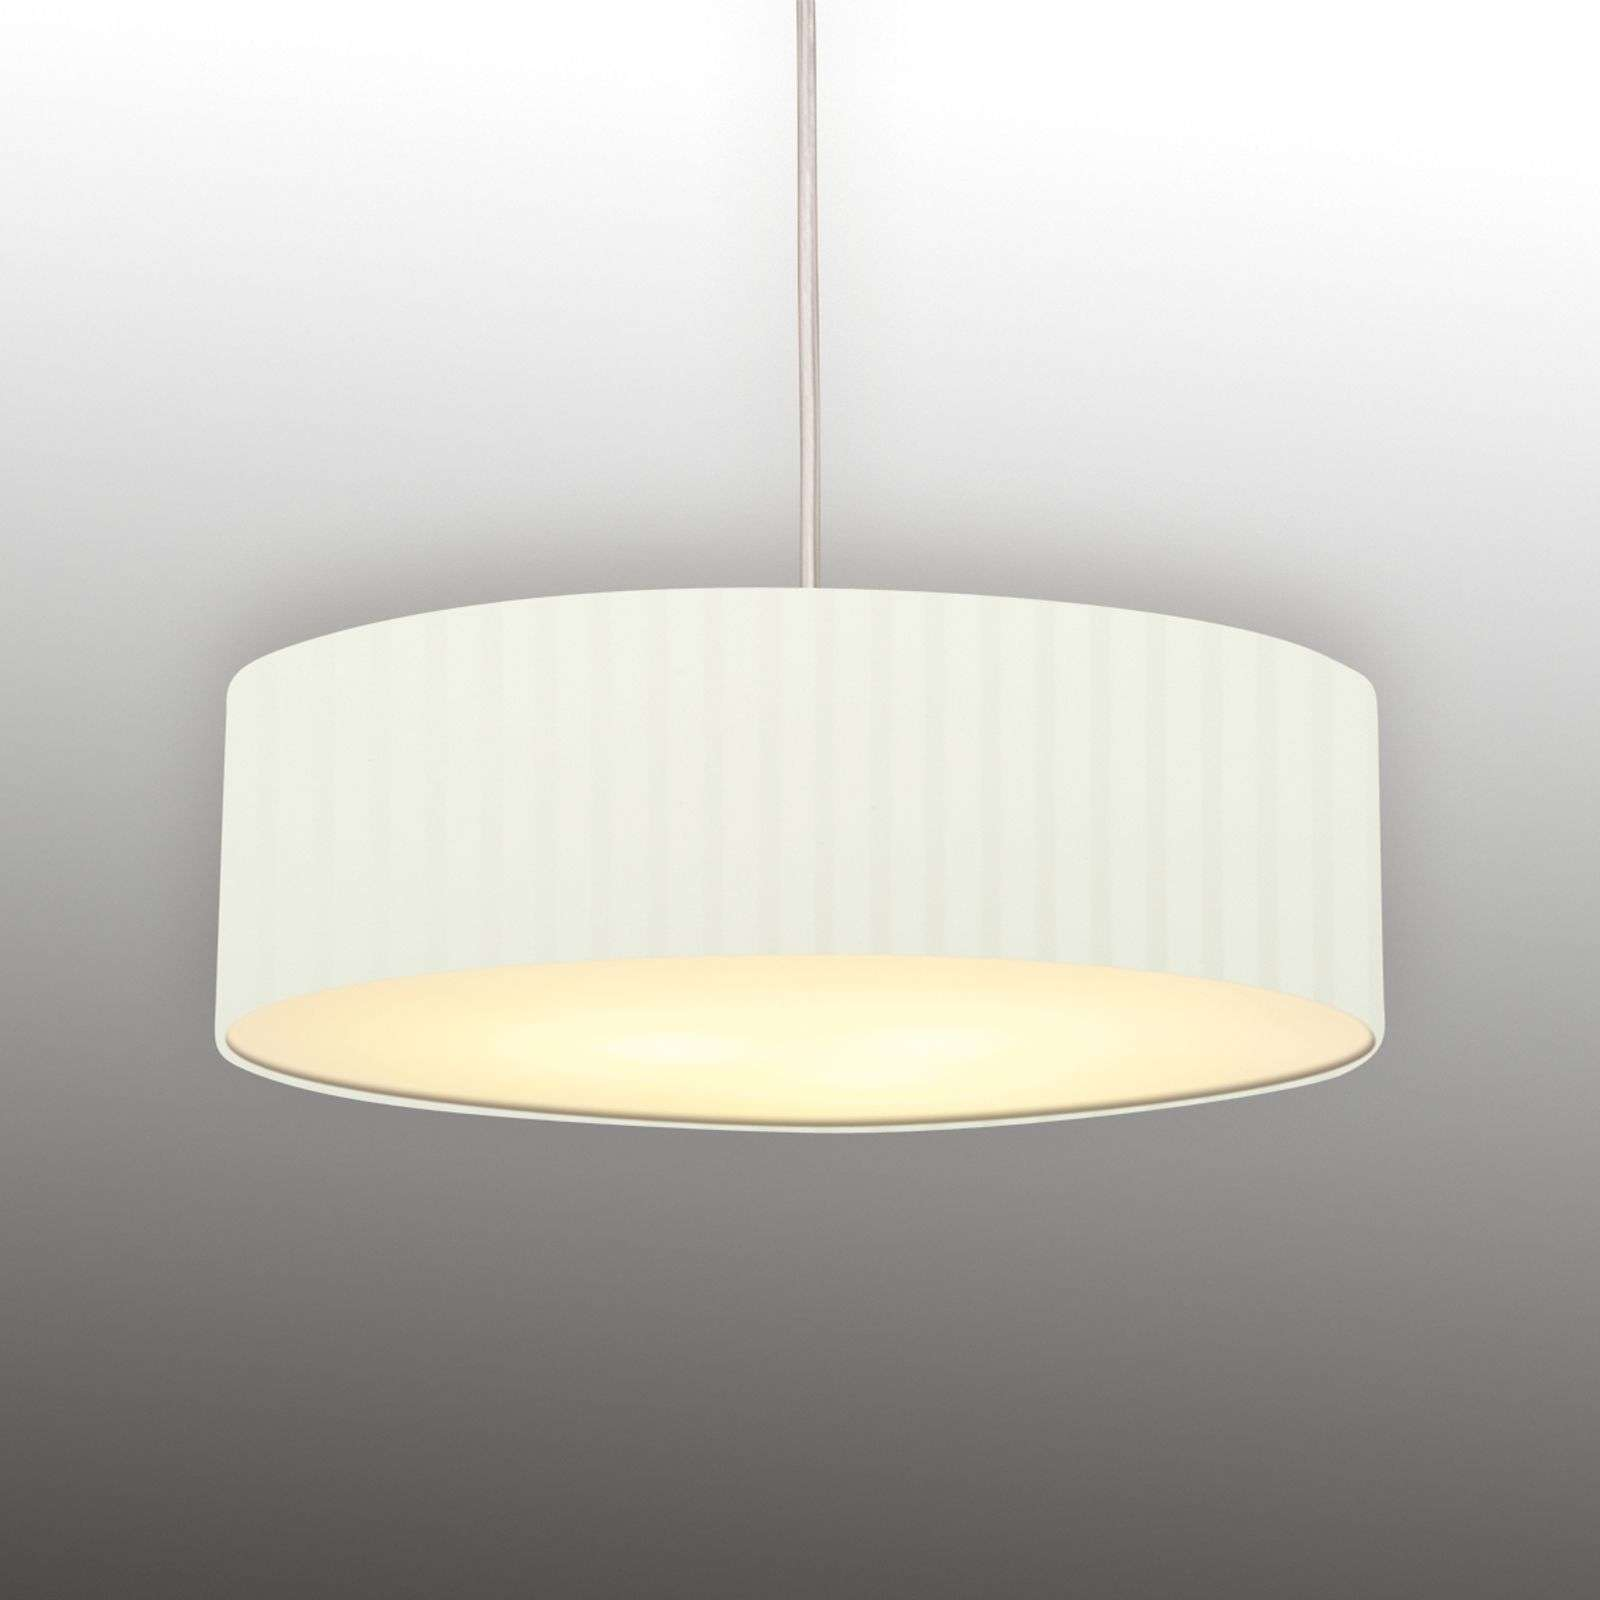 Benito - sfeervolle hanglamp 45 cm